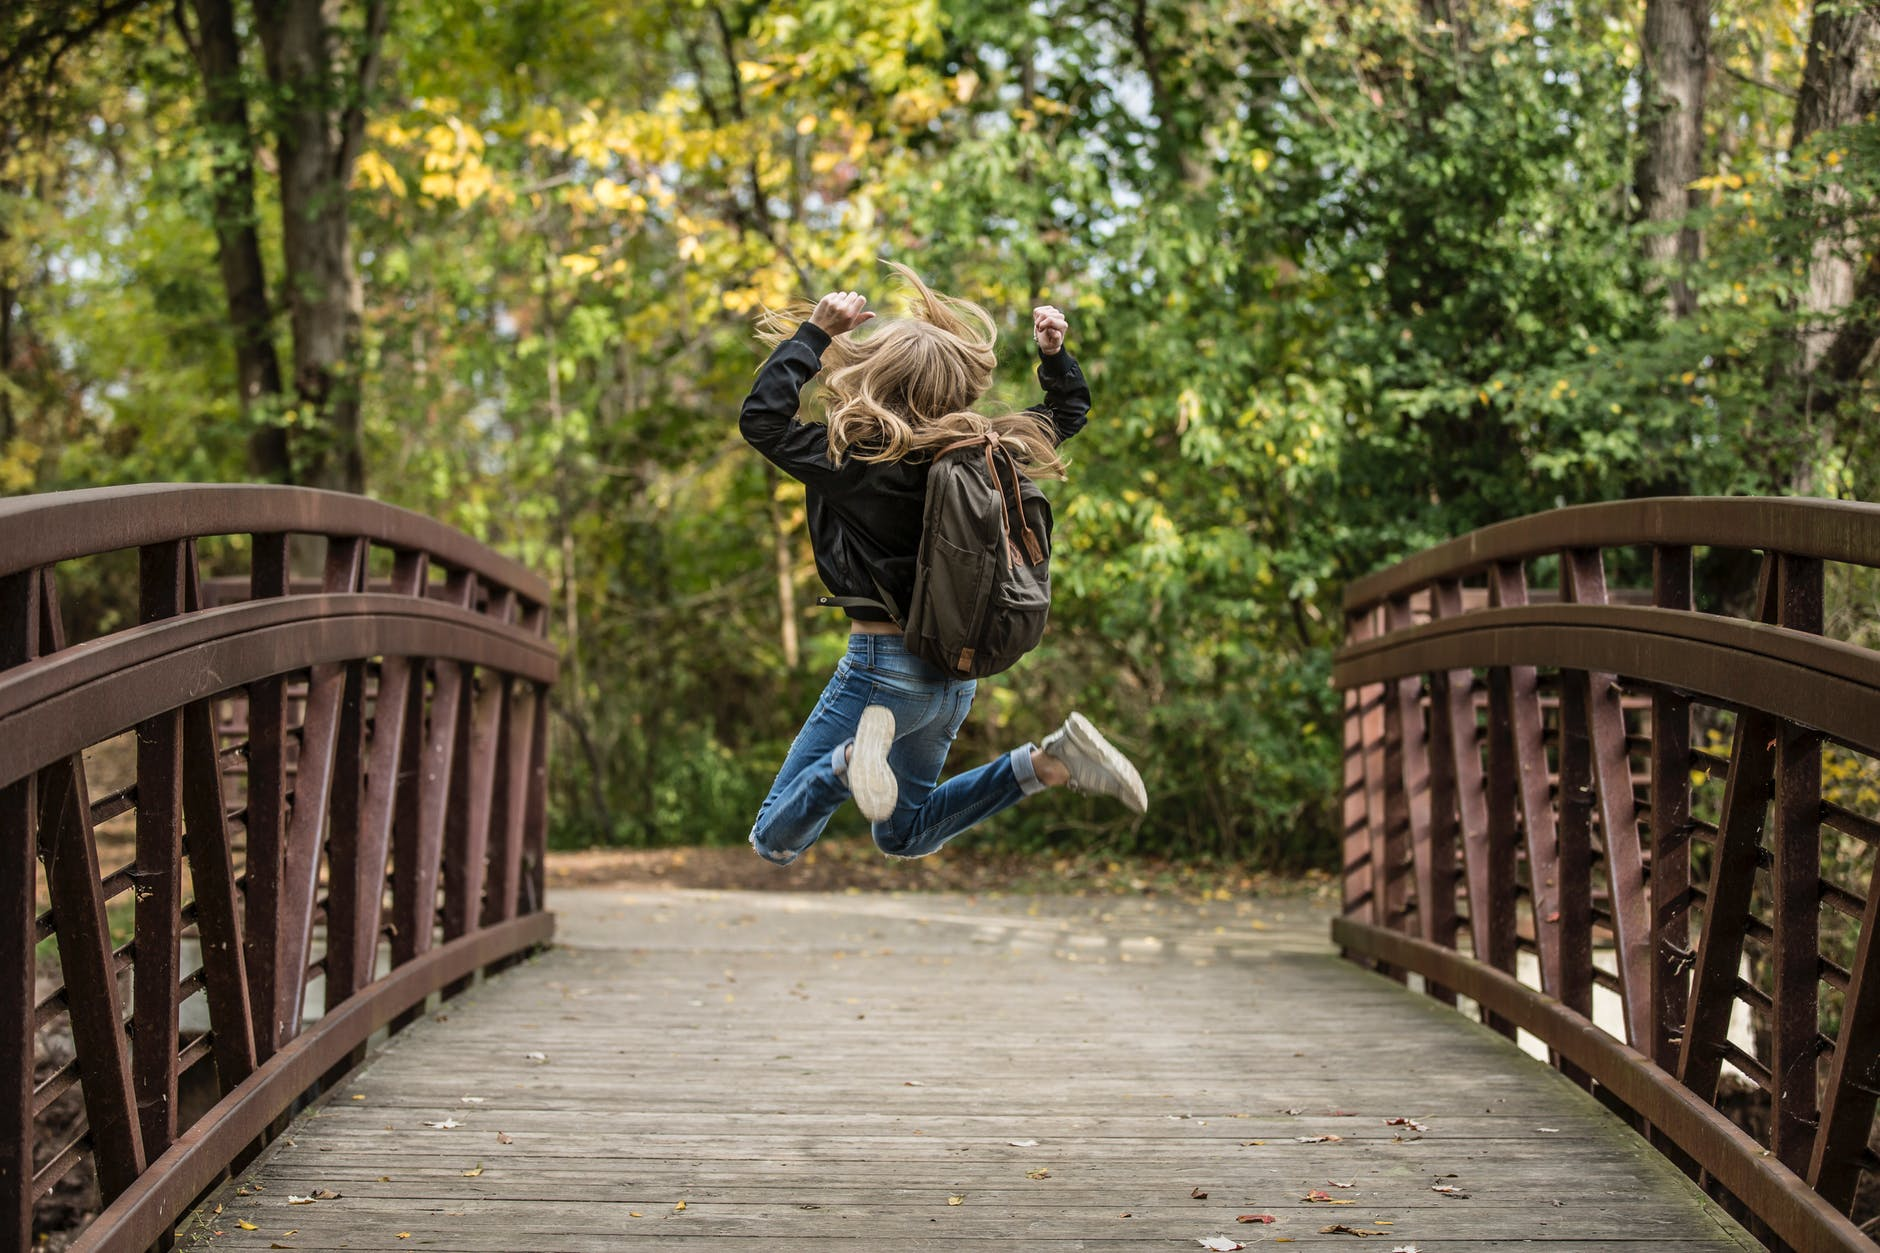 girl jumping on the bridge wearing black jacket